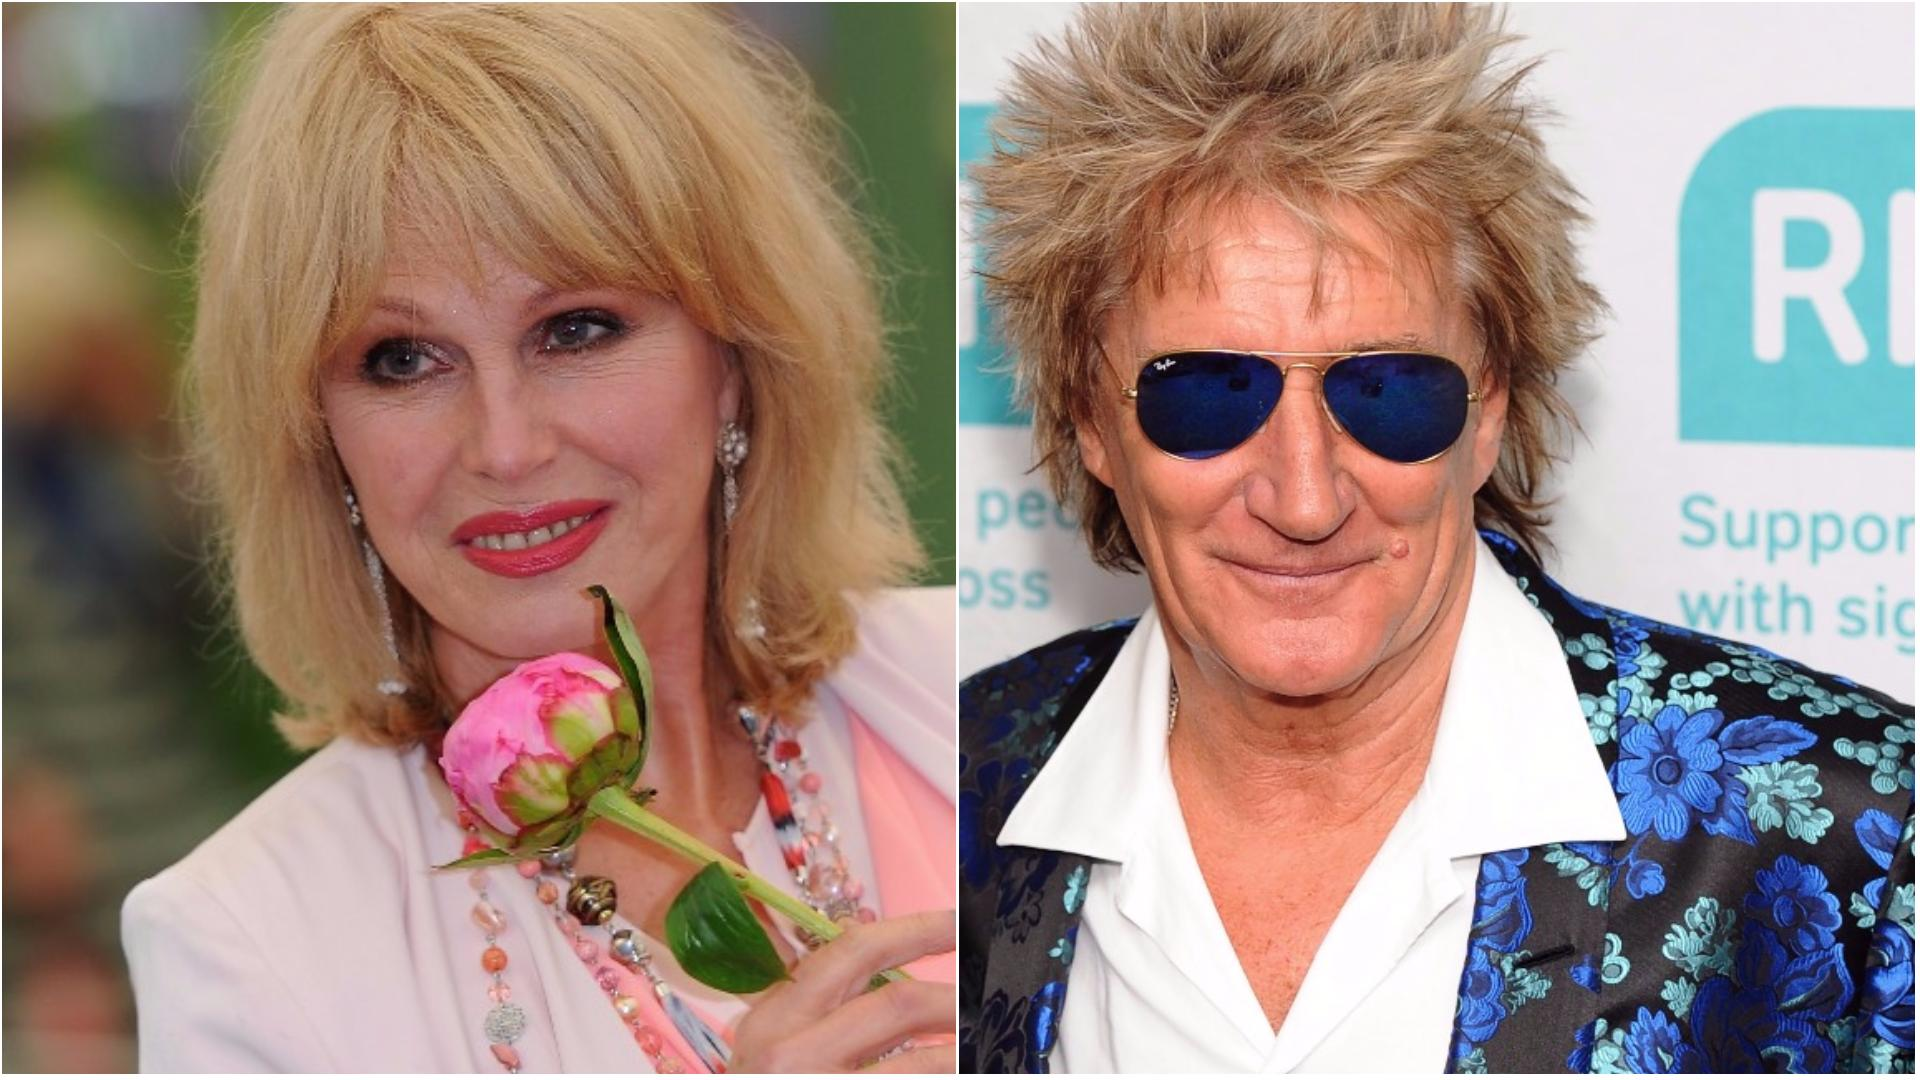 Rod Stewart and Joanna Lumley